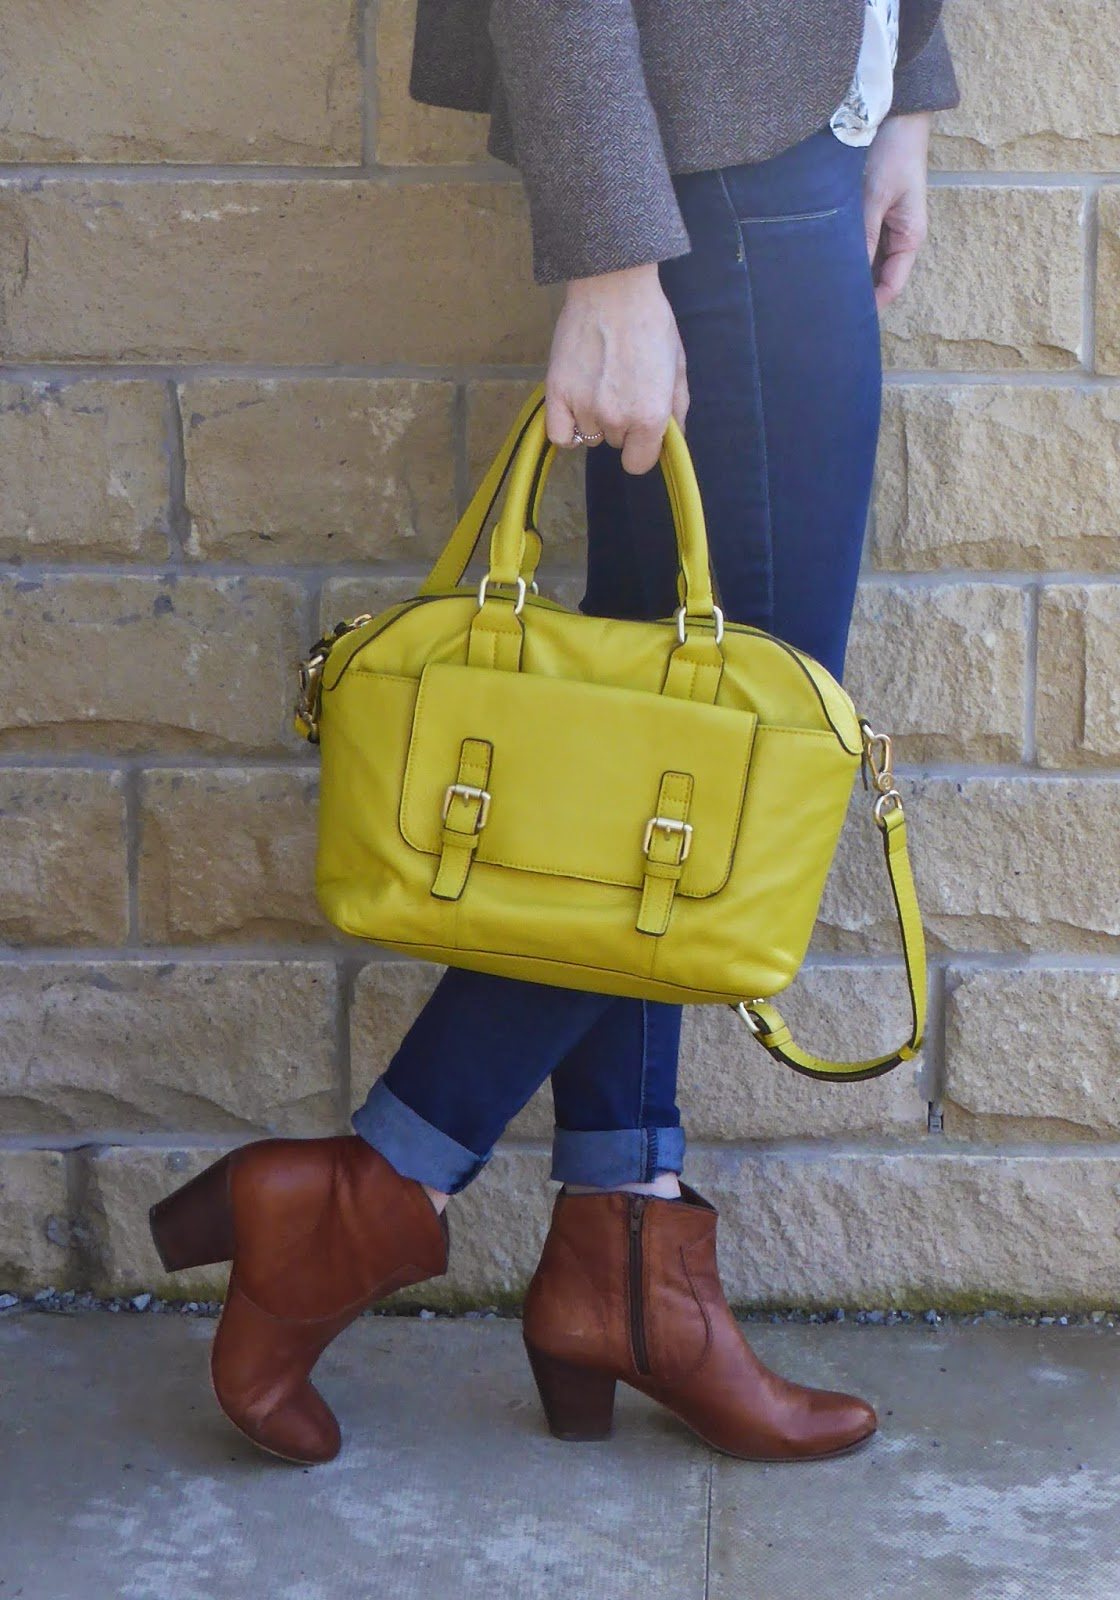 Outfit tweed jacket tan ankle boots yellow handbag and for Boden yellow bag